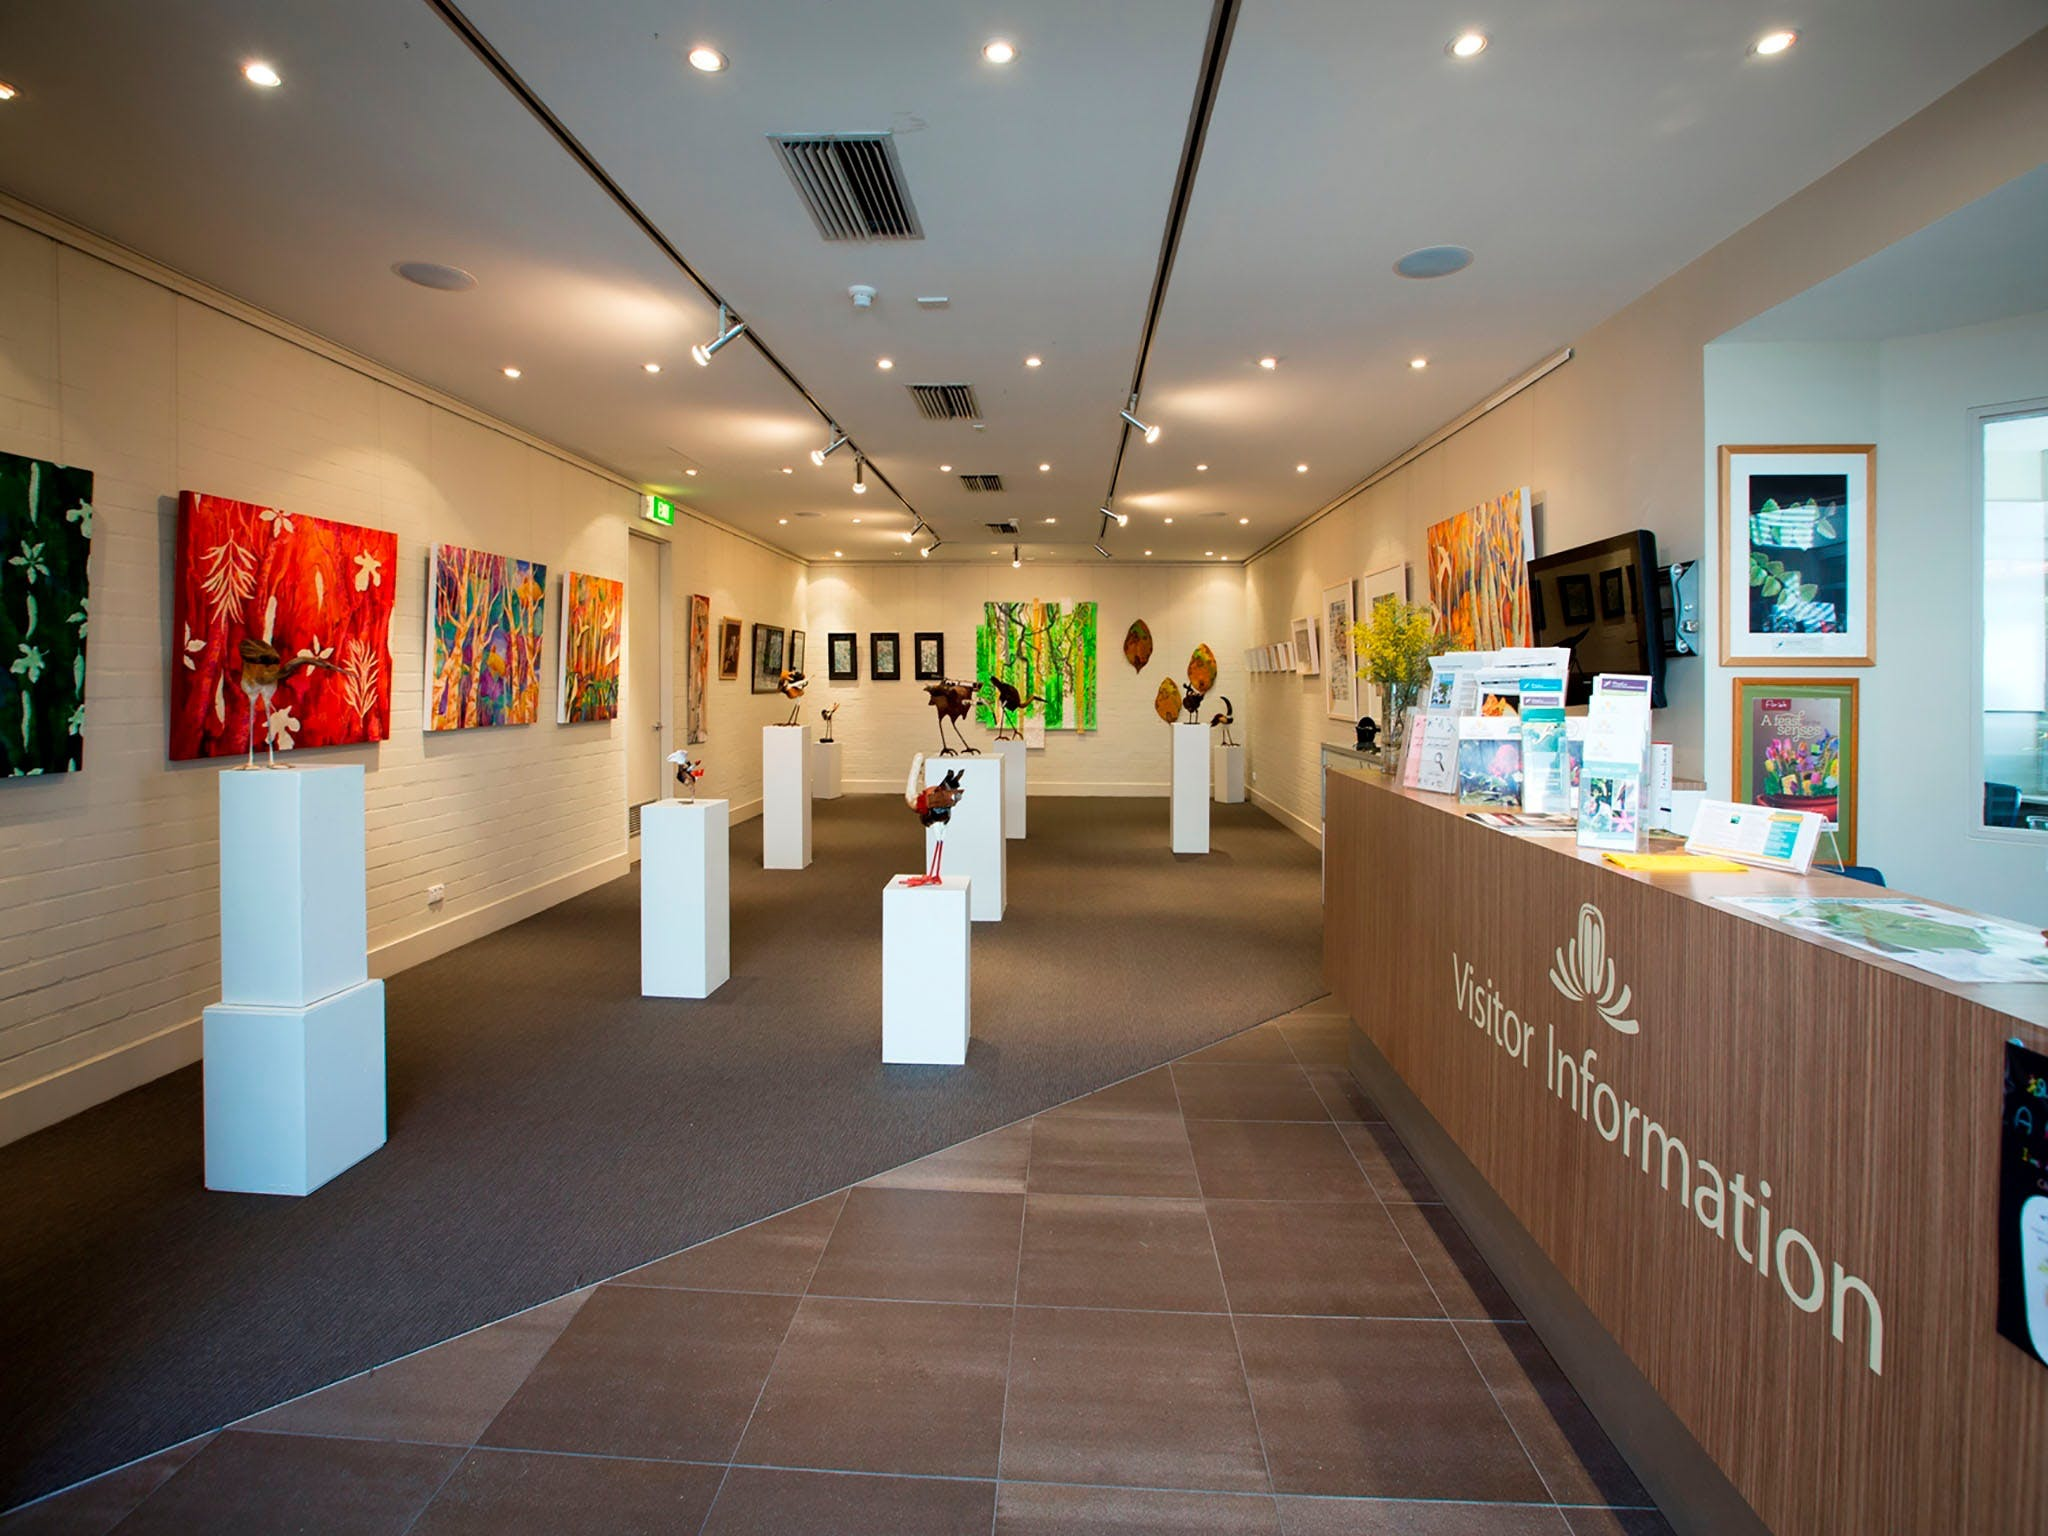 Australian National Botanic Gardens Visitor Centre Gallery - Accommodation in Brisbane